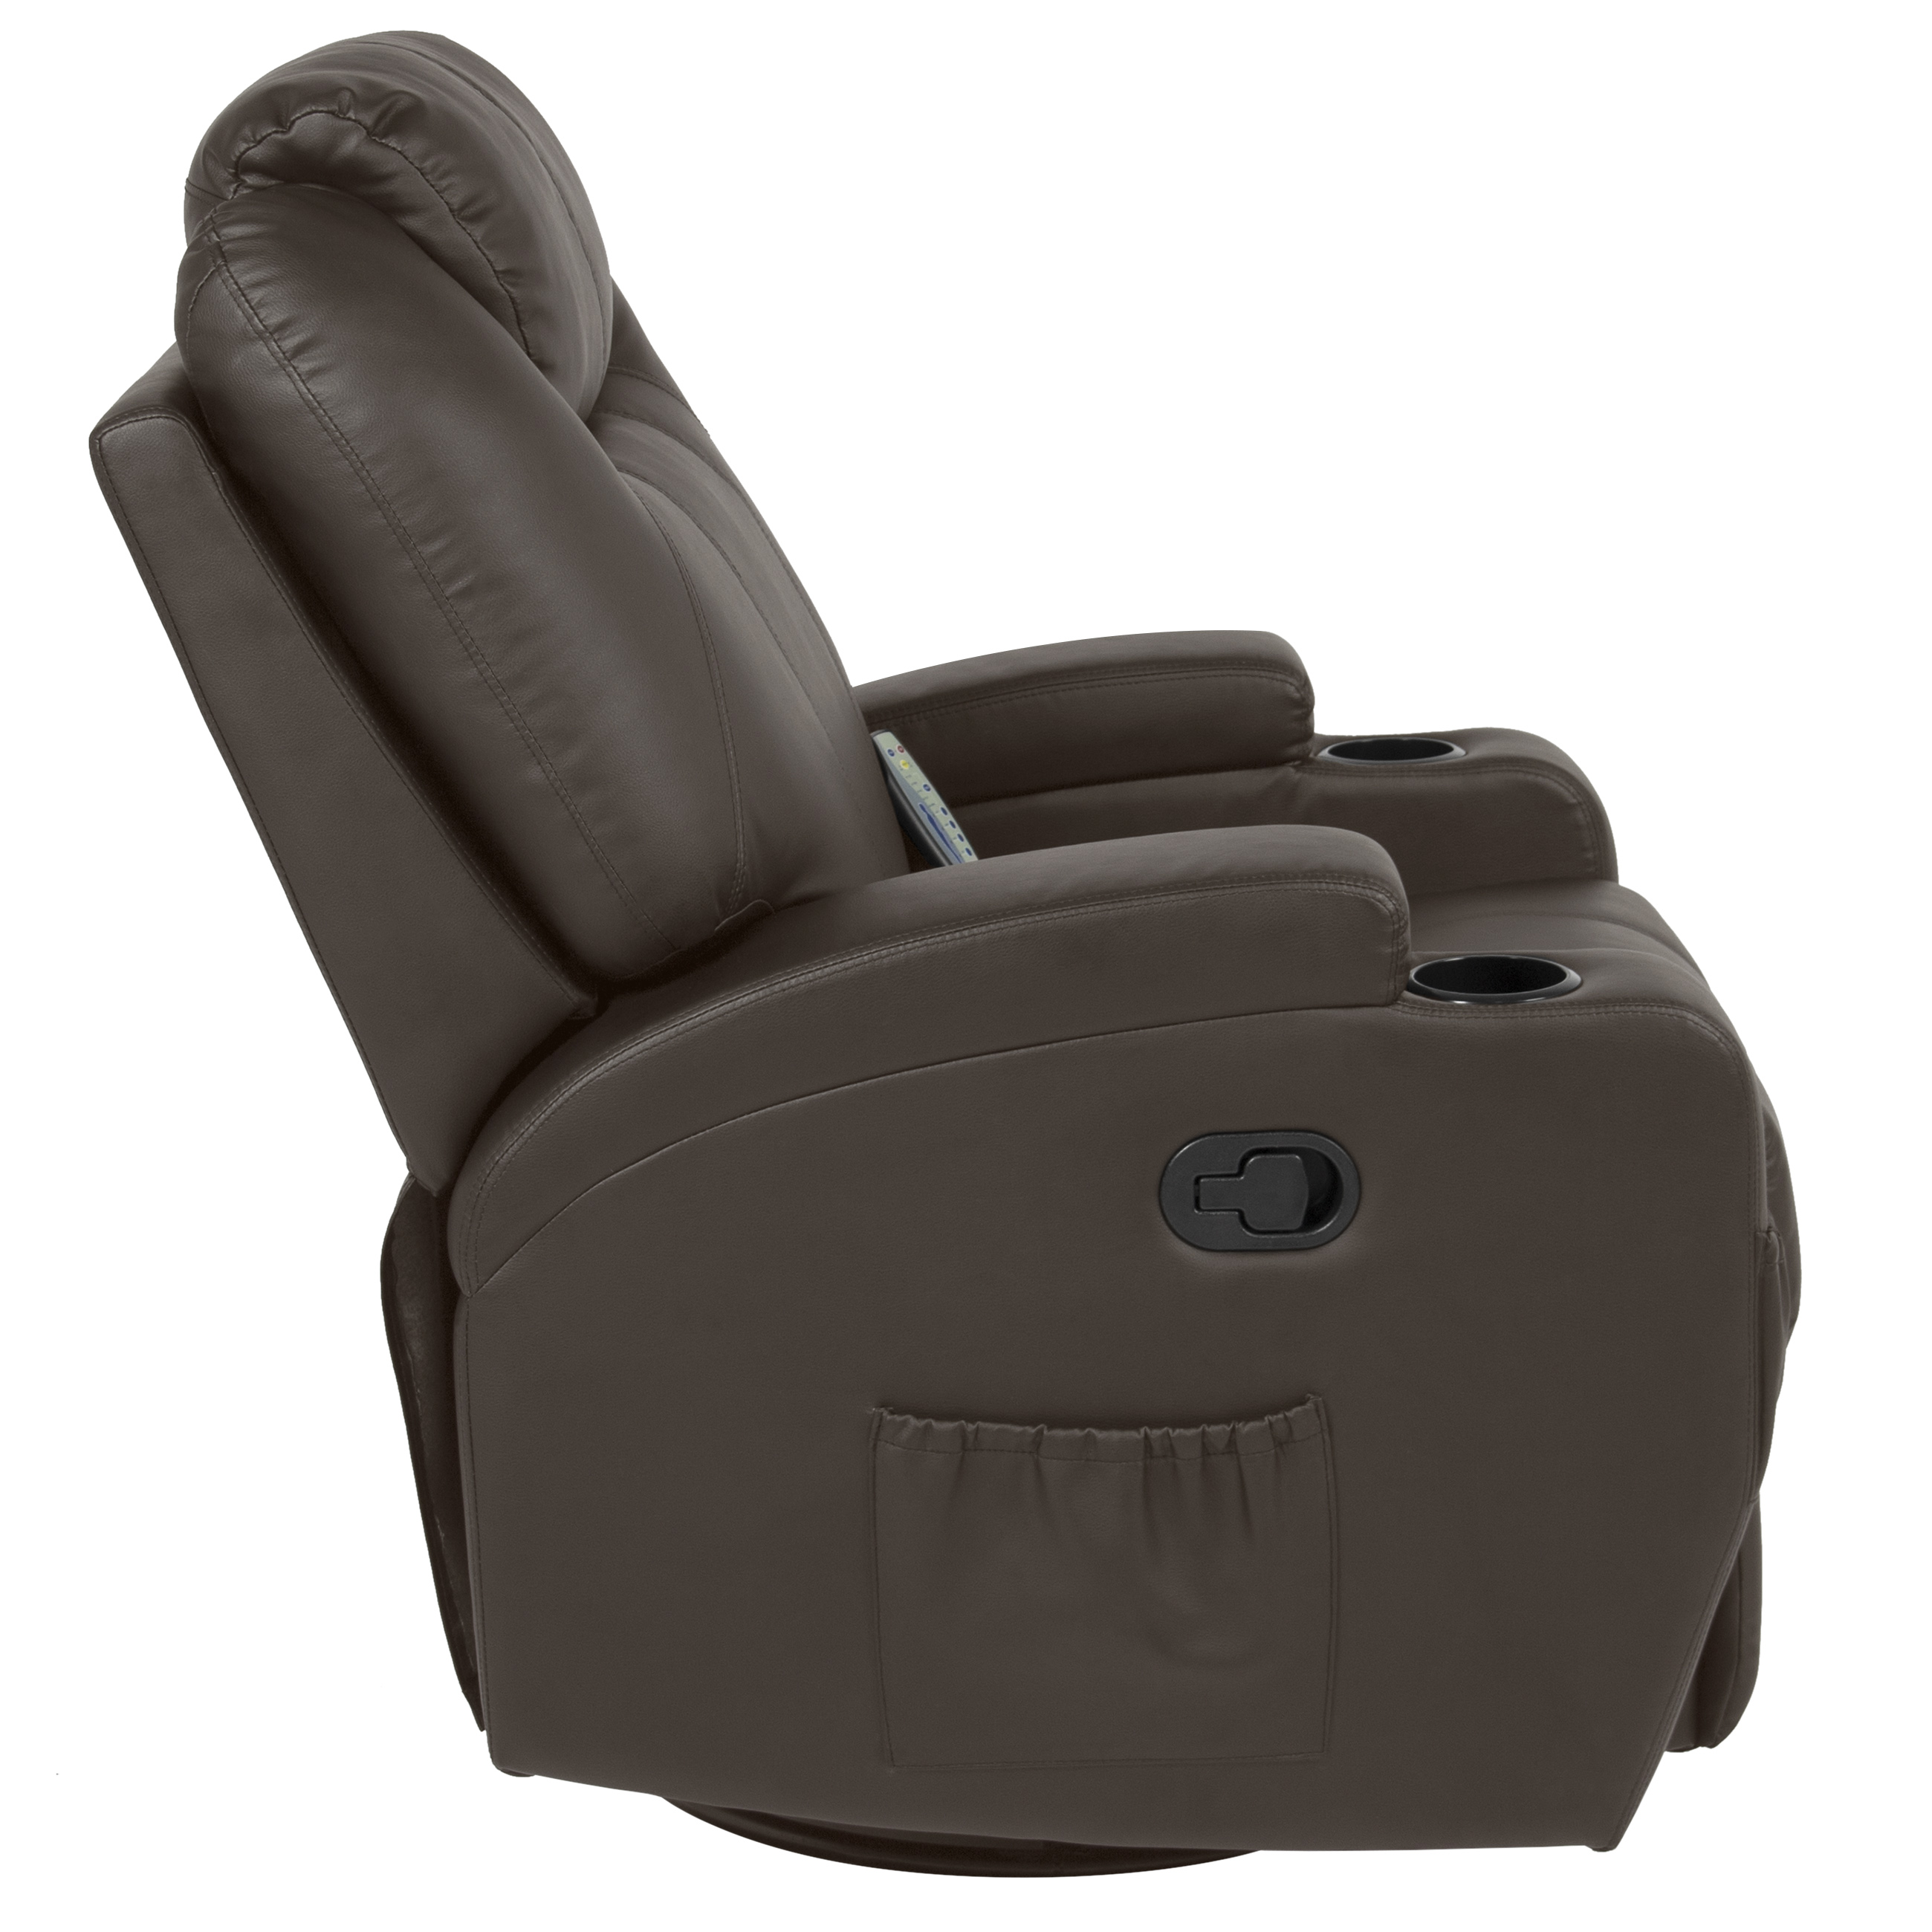 Best Choice Products Executive Swivel Massage Recliner Chair W/ Remote  Control, 5 Modes, 2 Cup Holders   Brown   Walmart.com